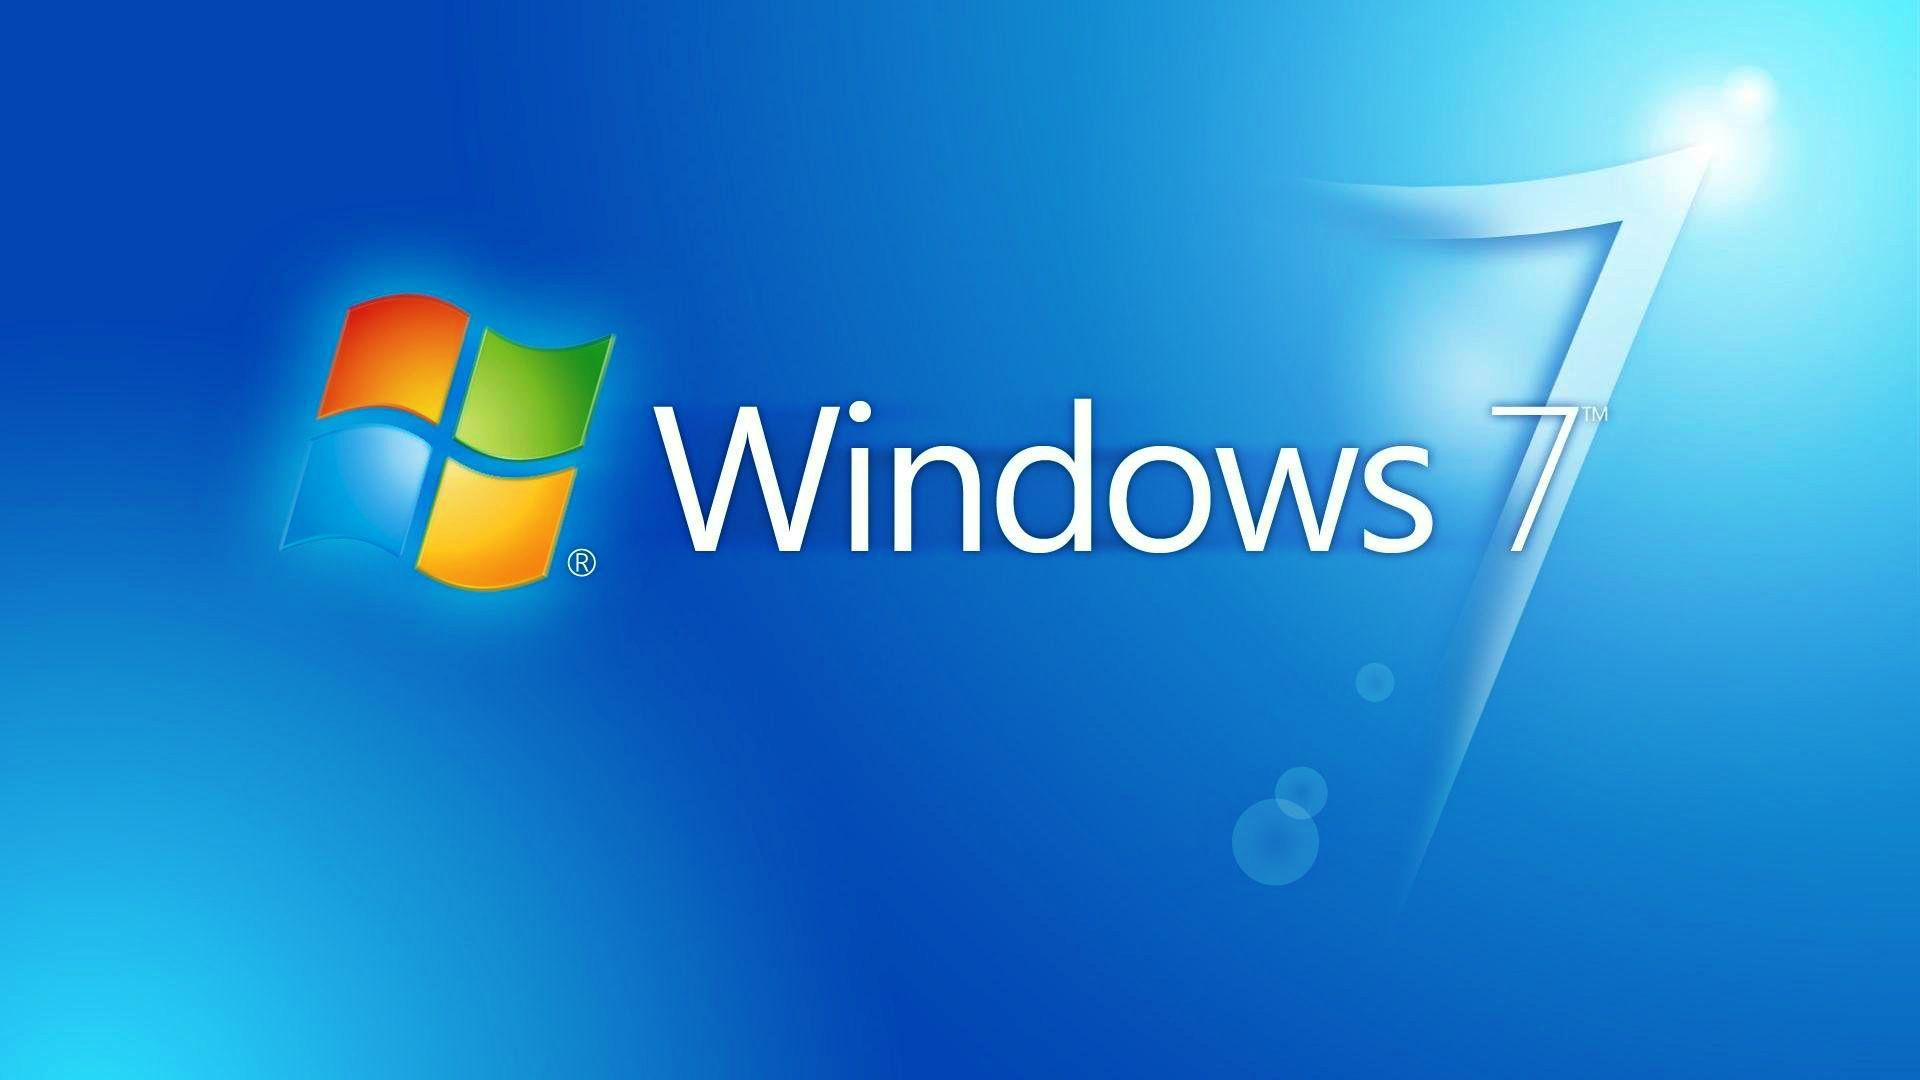 Free Windows 7 Wallpapers Wallpaper Cave